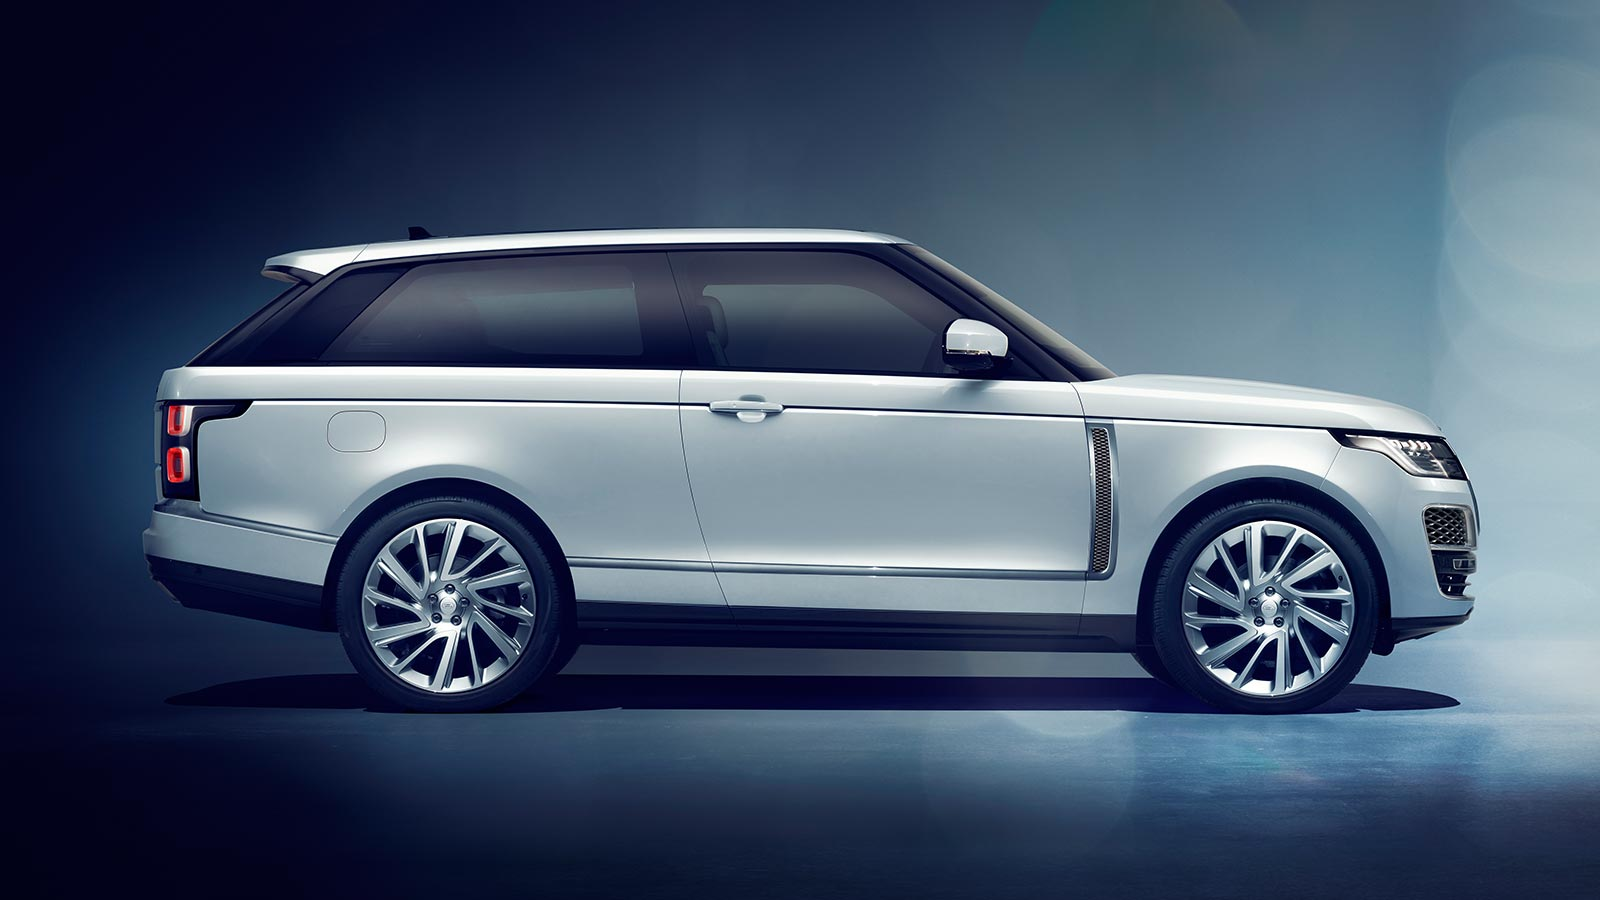 The Range Rover SV Coupé in Valloire White with 23 inch two tone wheels side profile